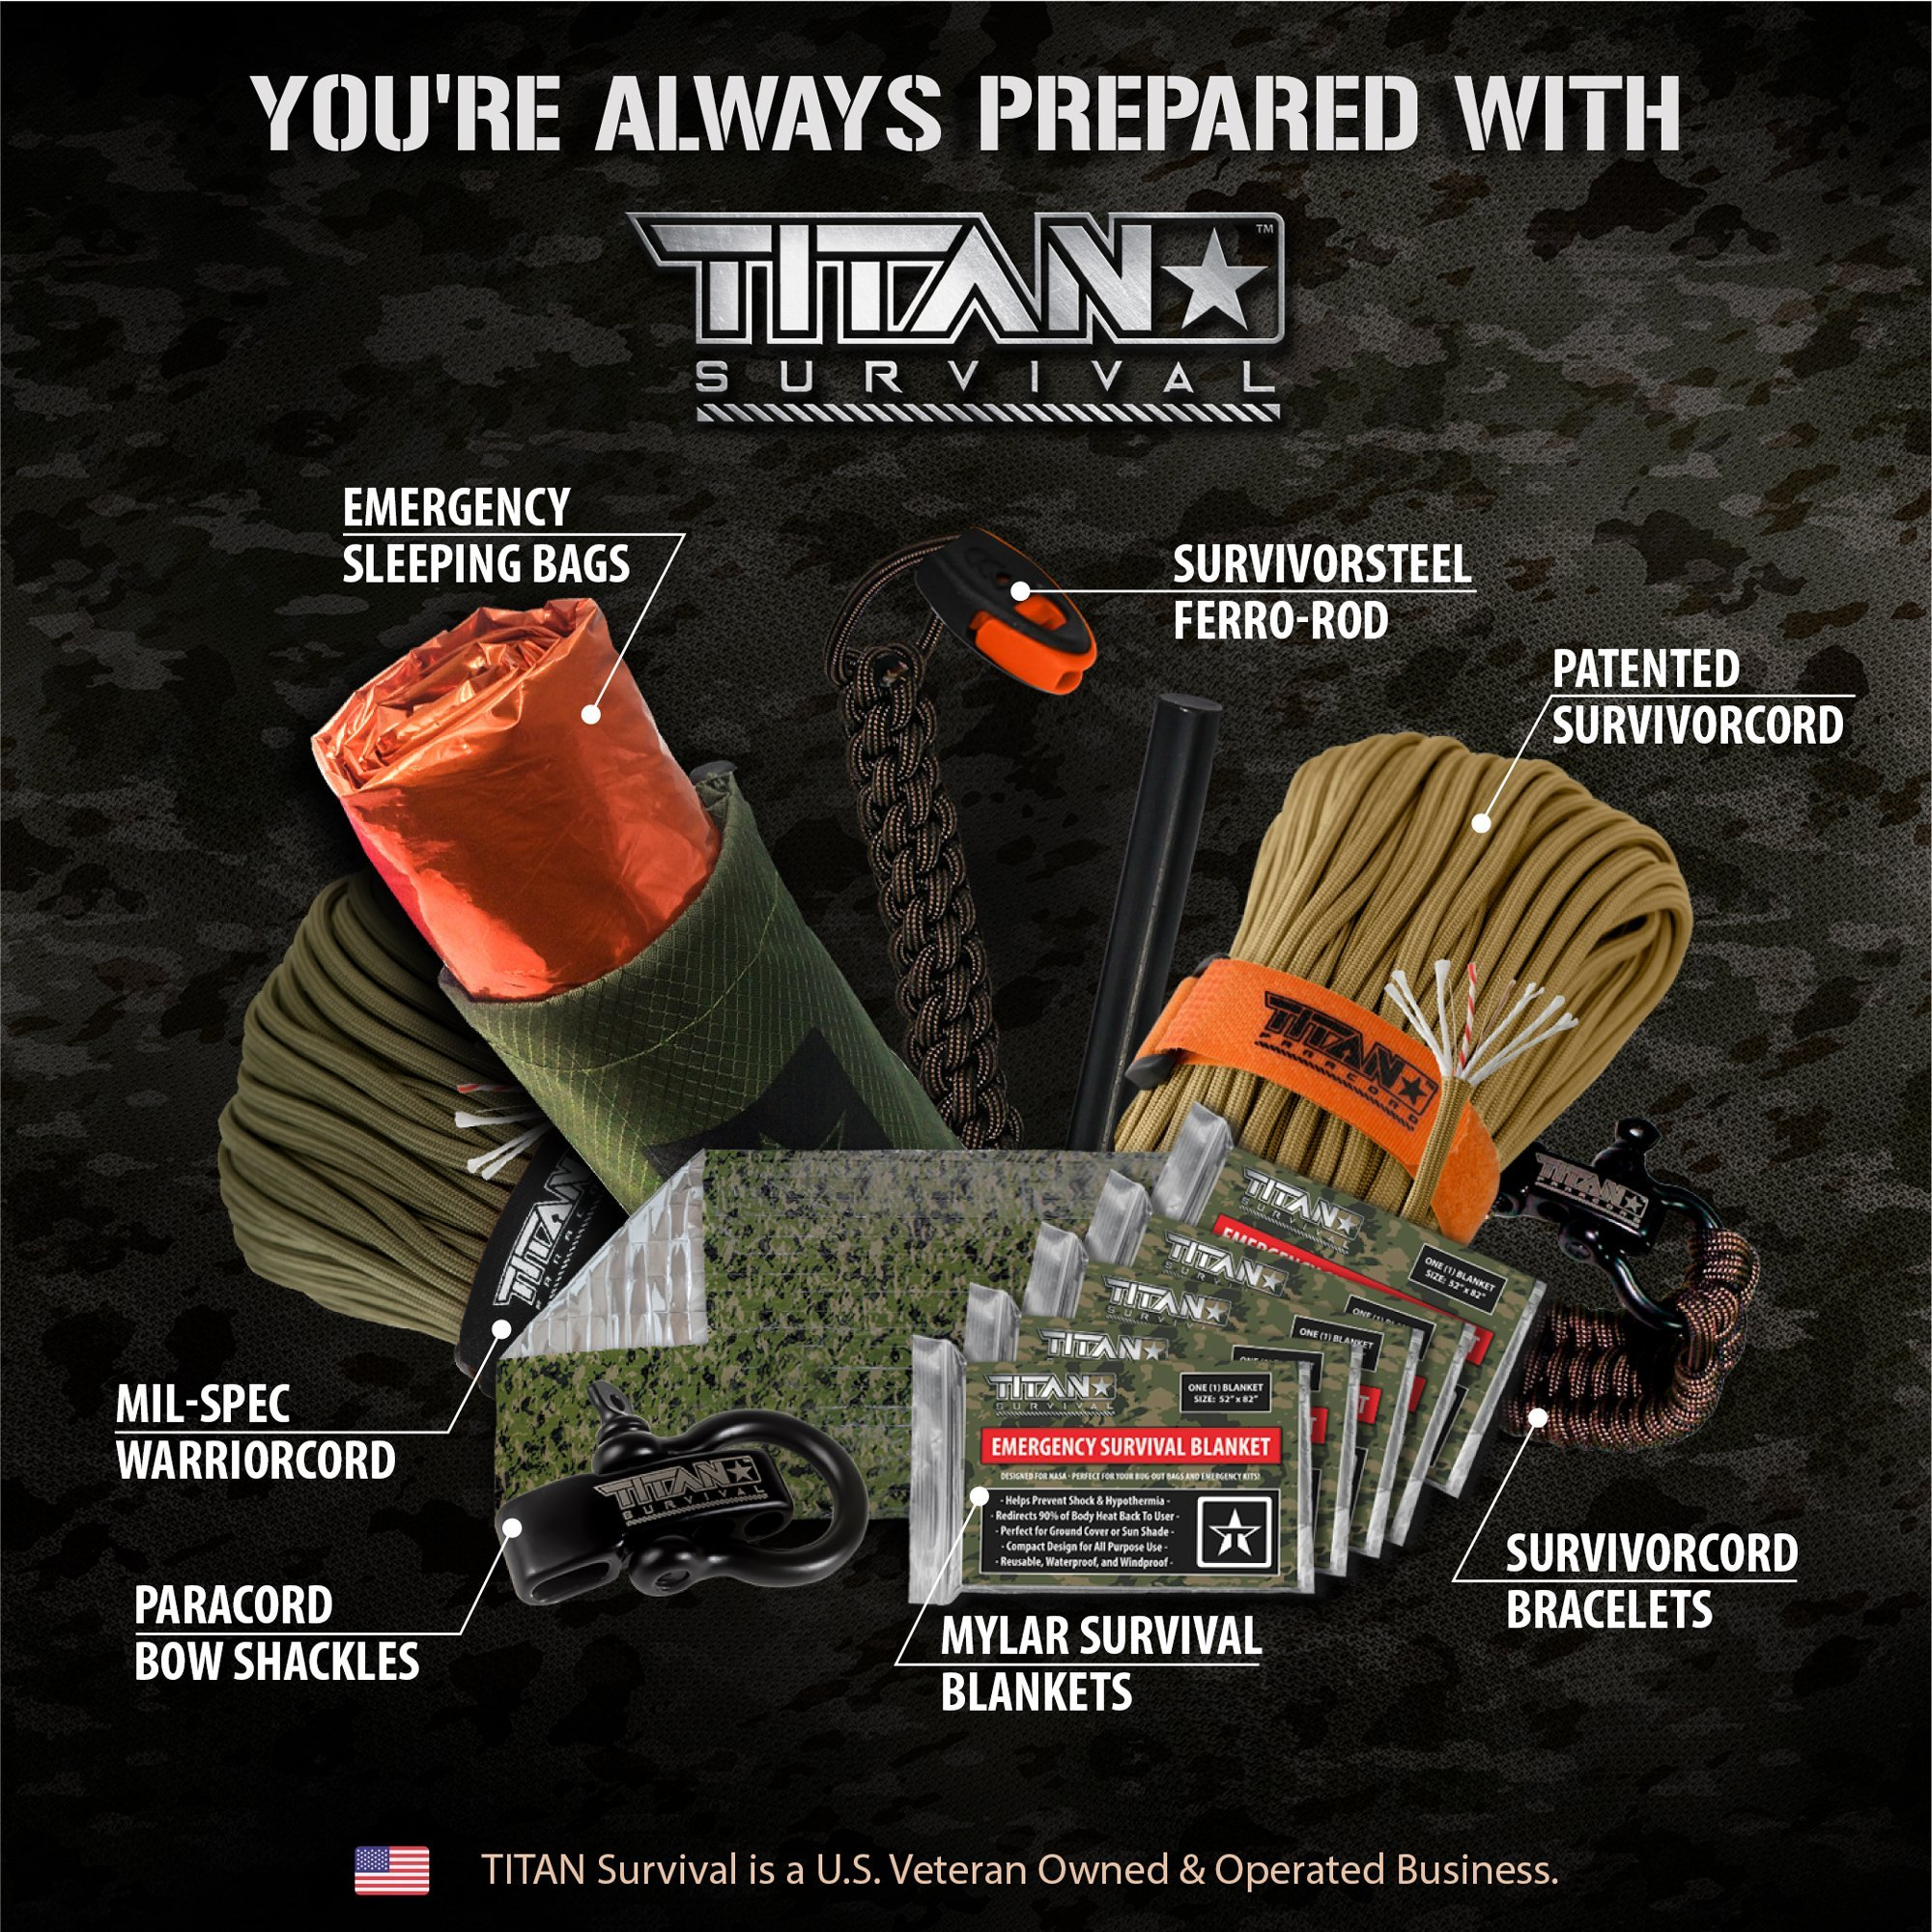 Titan Bow Shackles for Paracord Bracelets (5-Pack)   Premium Stainless Steel Metal Clasps Holds up to 1650 lbs in an Emergency. by Titan Paracord (Image #4)